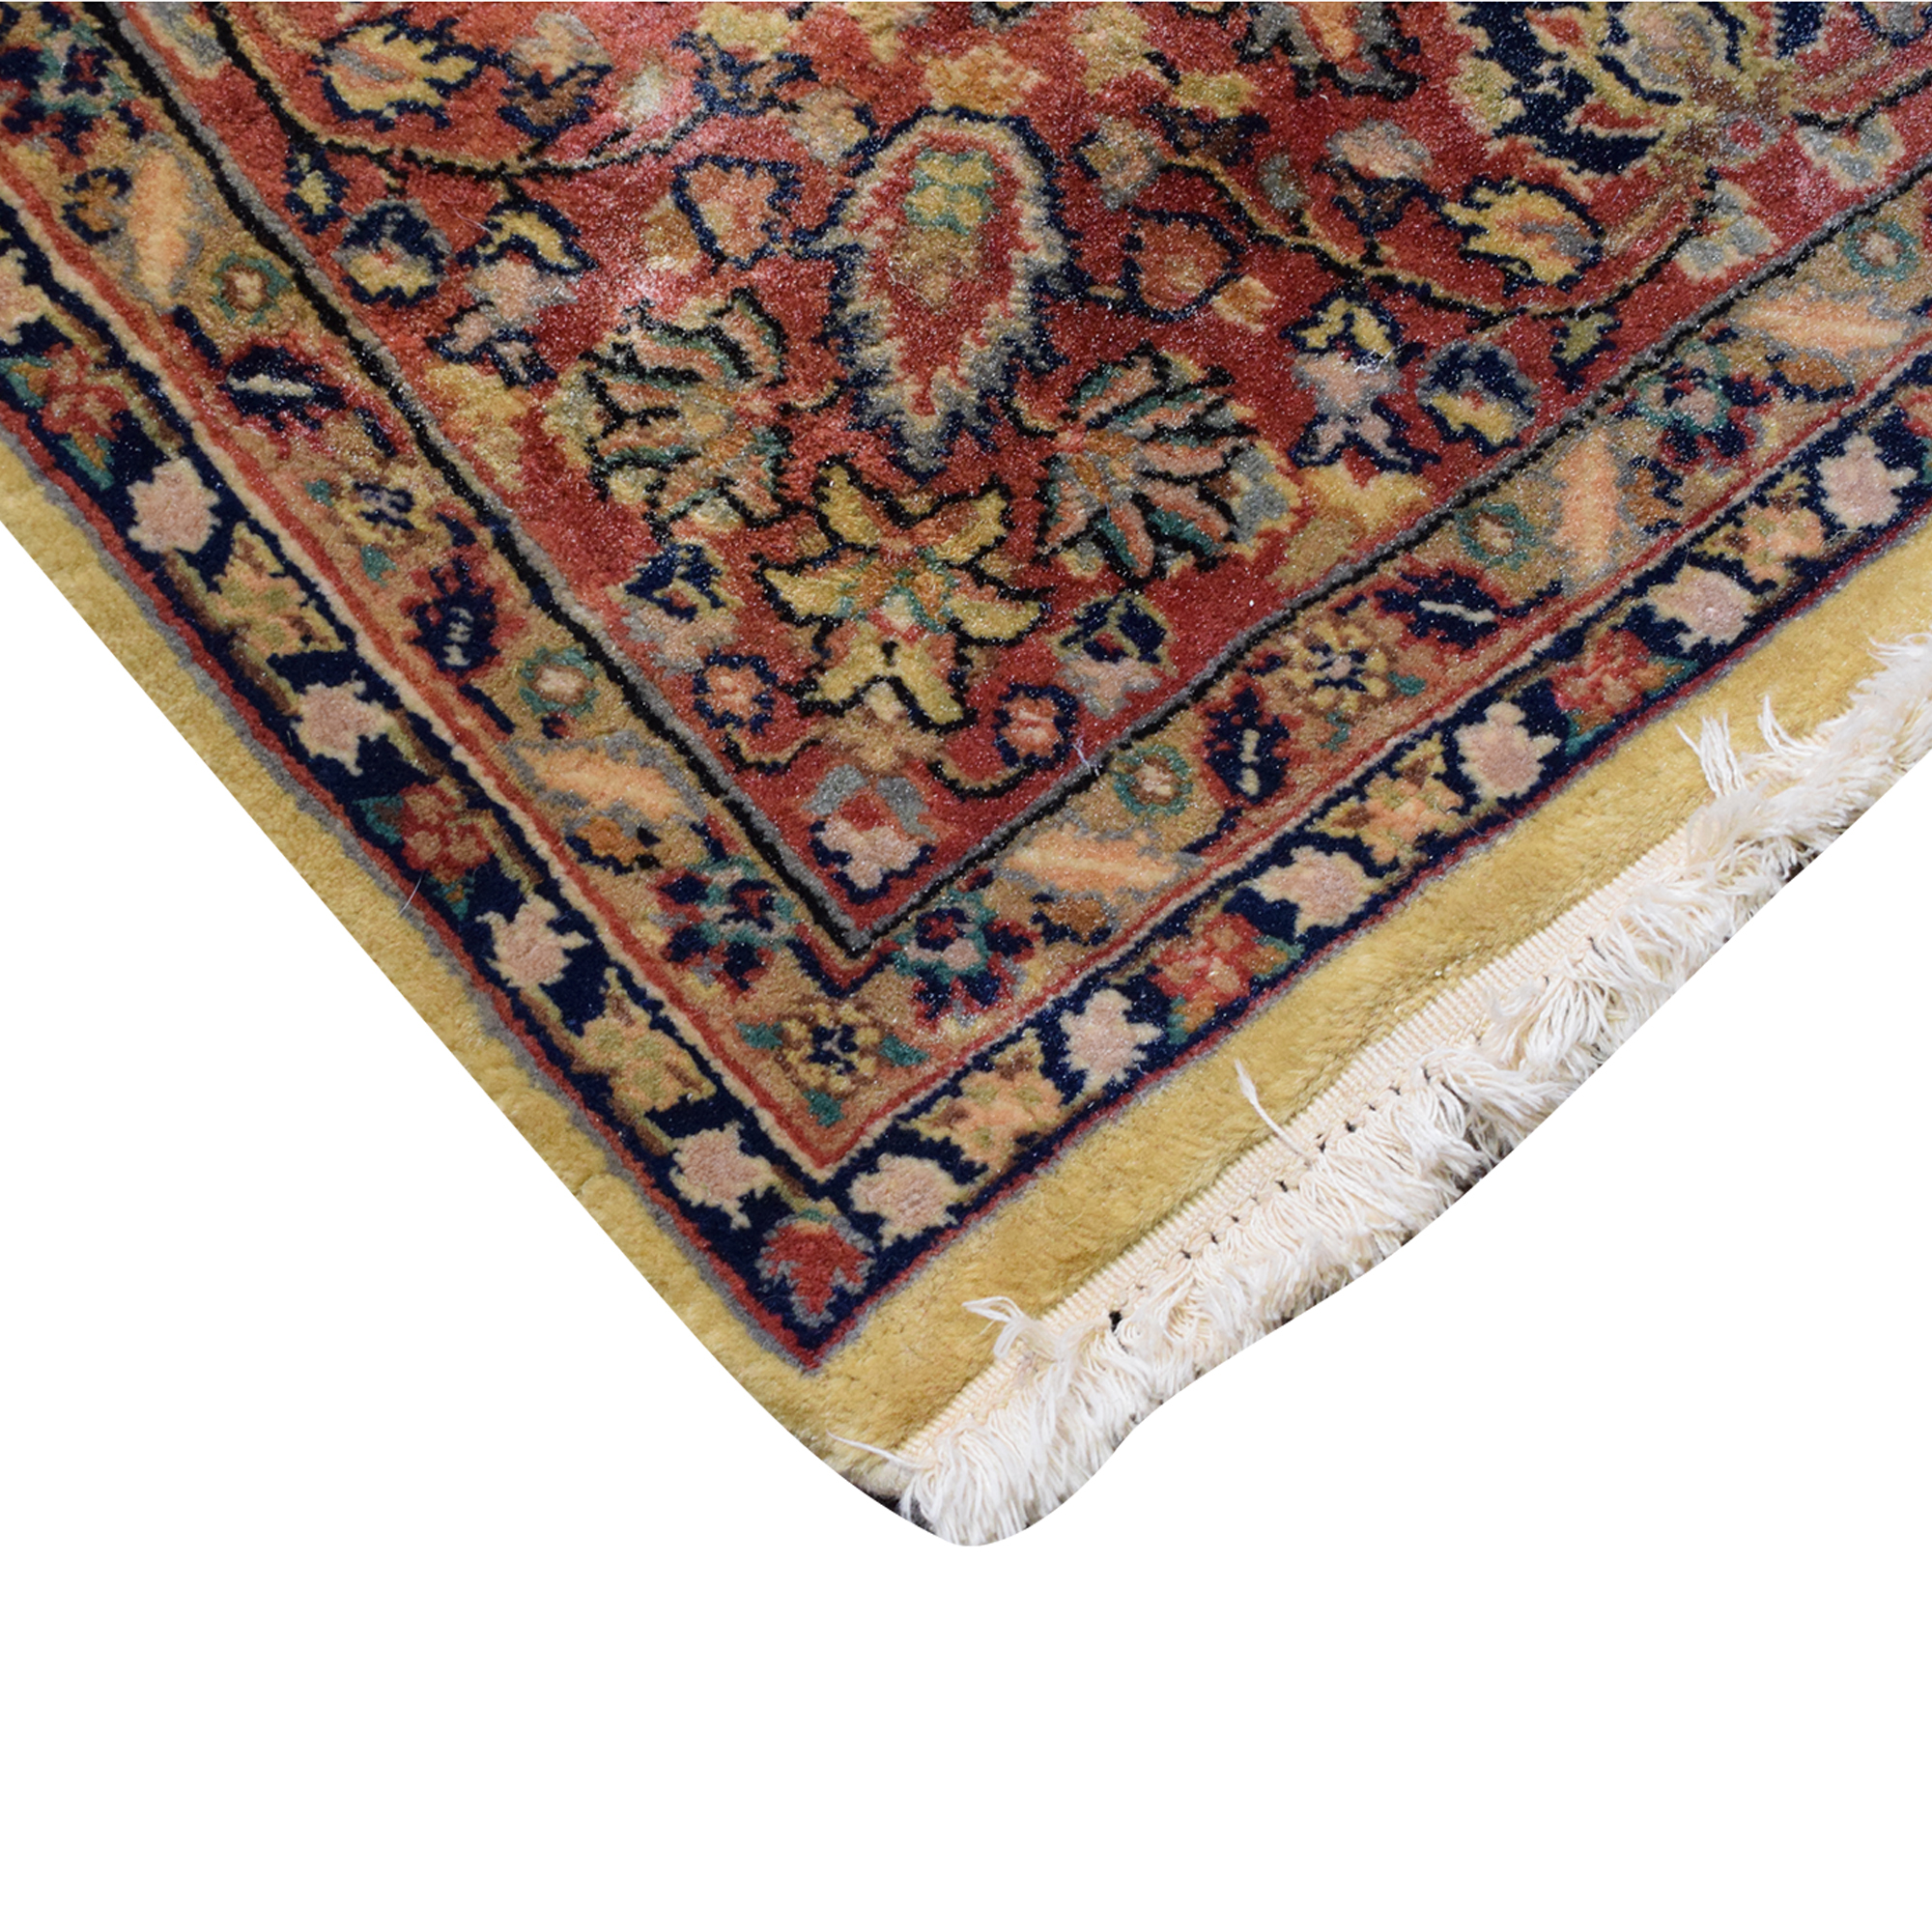 Floral Persian Rug used